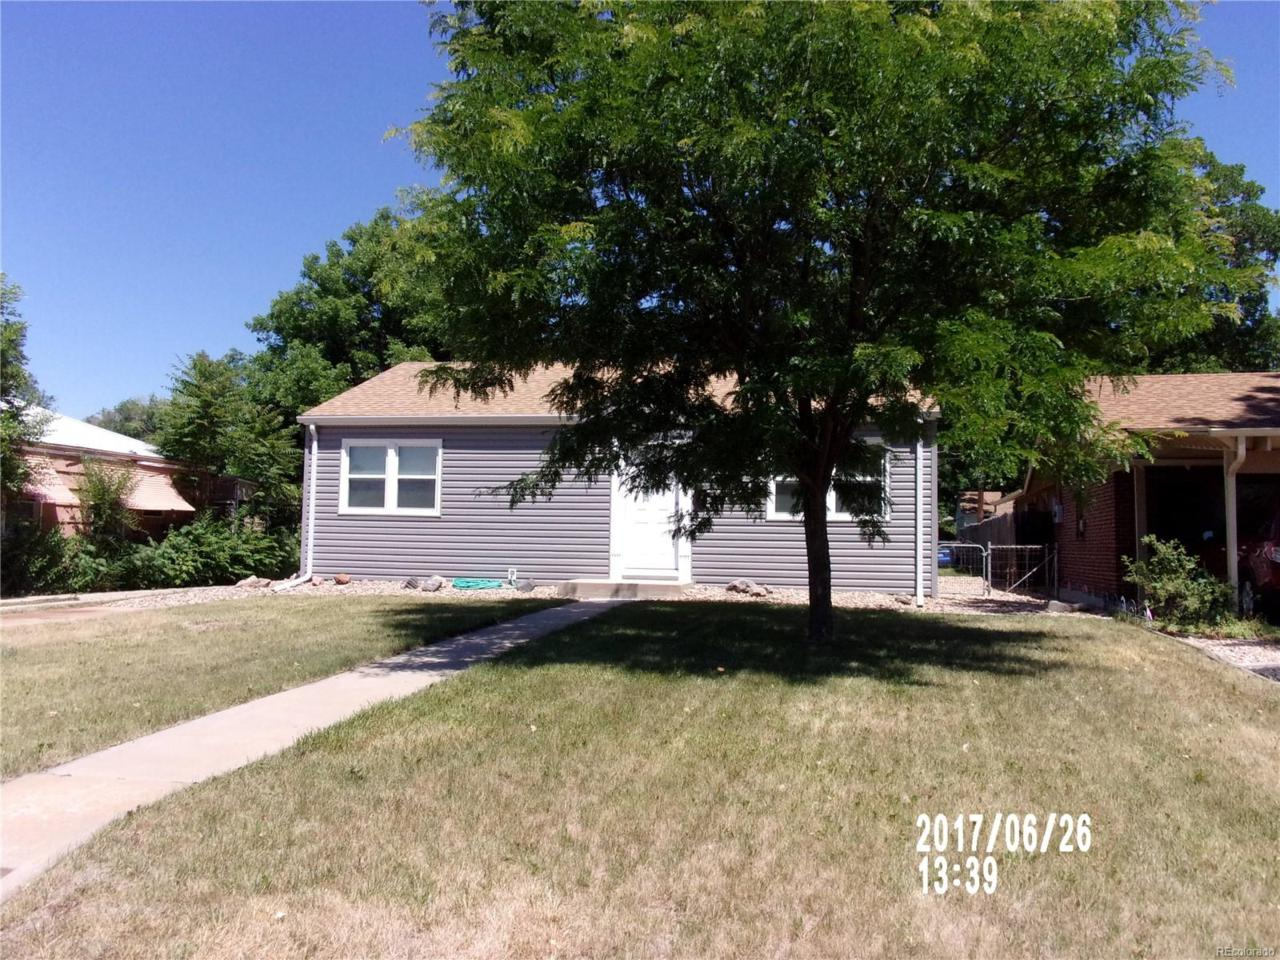 4648 S Lincoln Street, Englewood, CO 80113 (MLS #8955673) :: 8z Real Estate